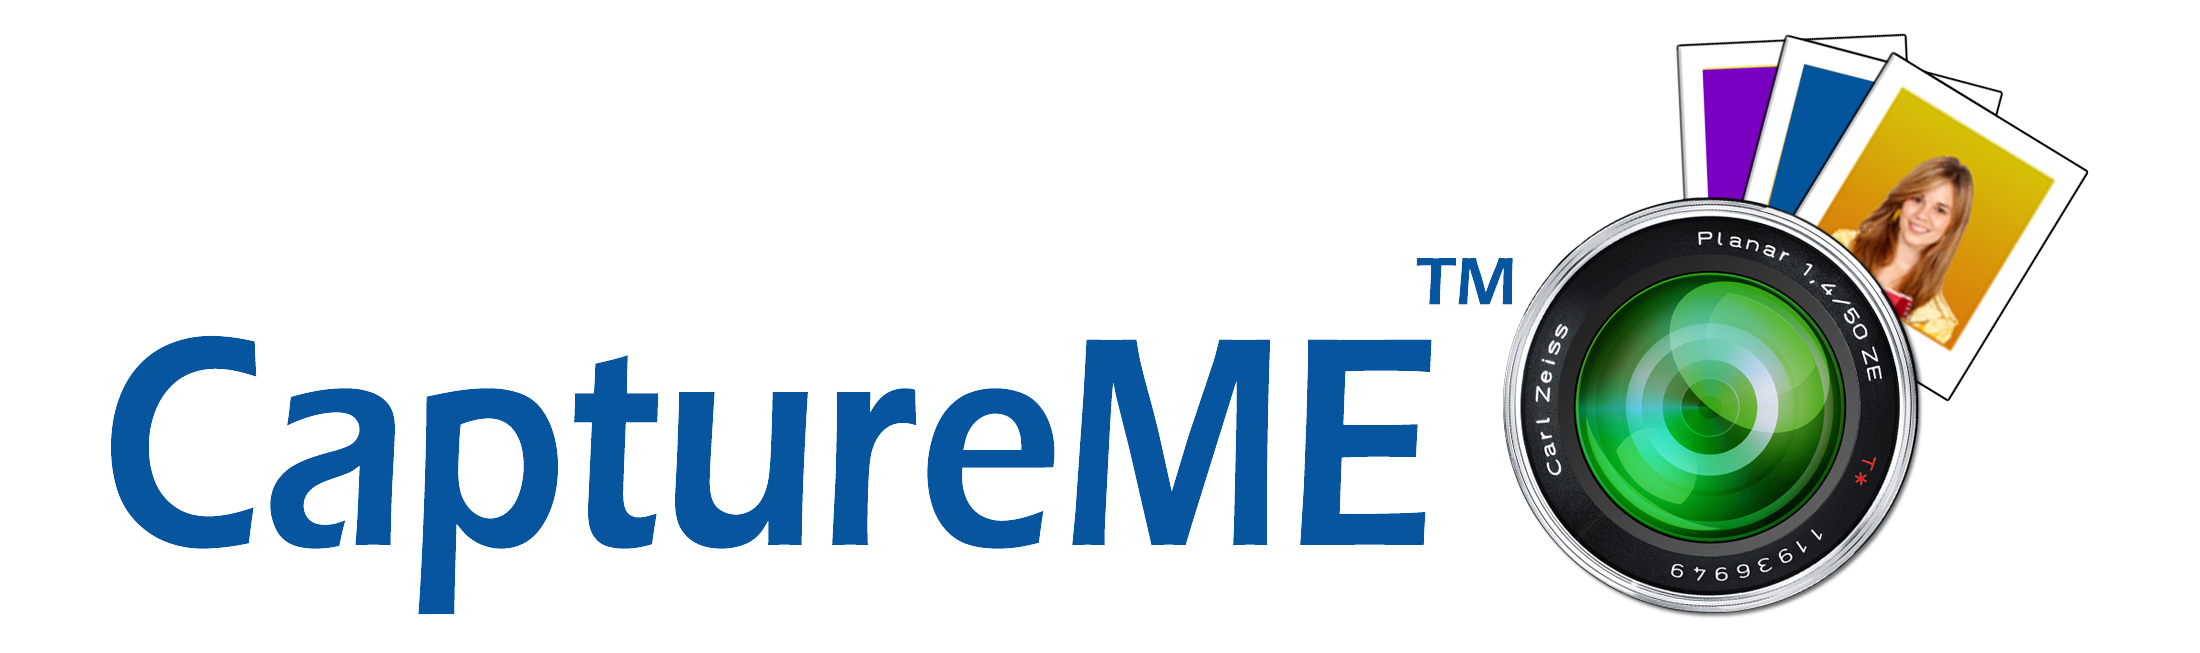 CaptureME Logo